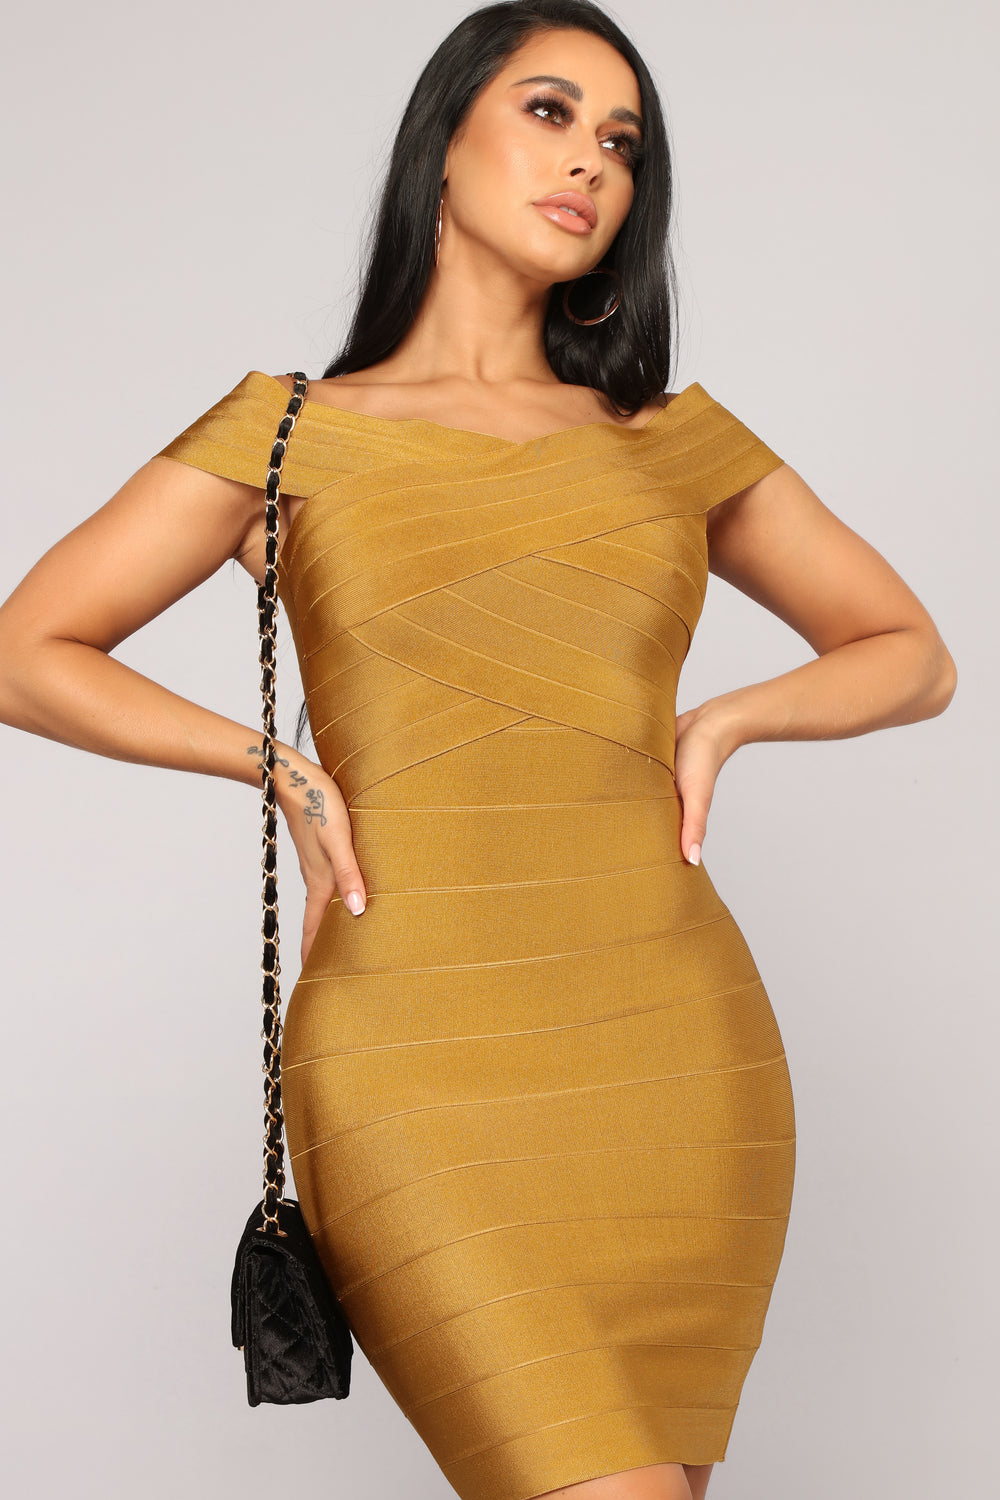 Cross My Body Dress - Mustard